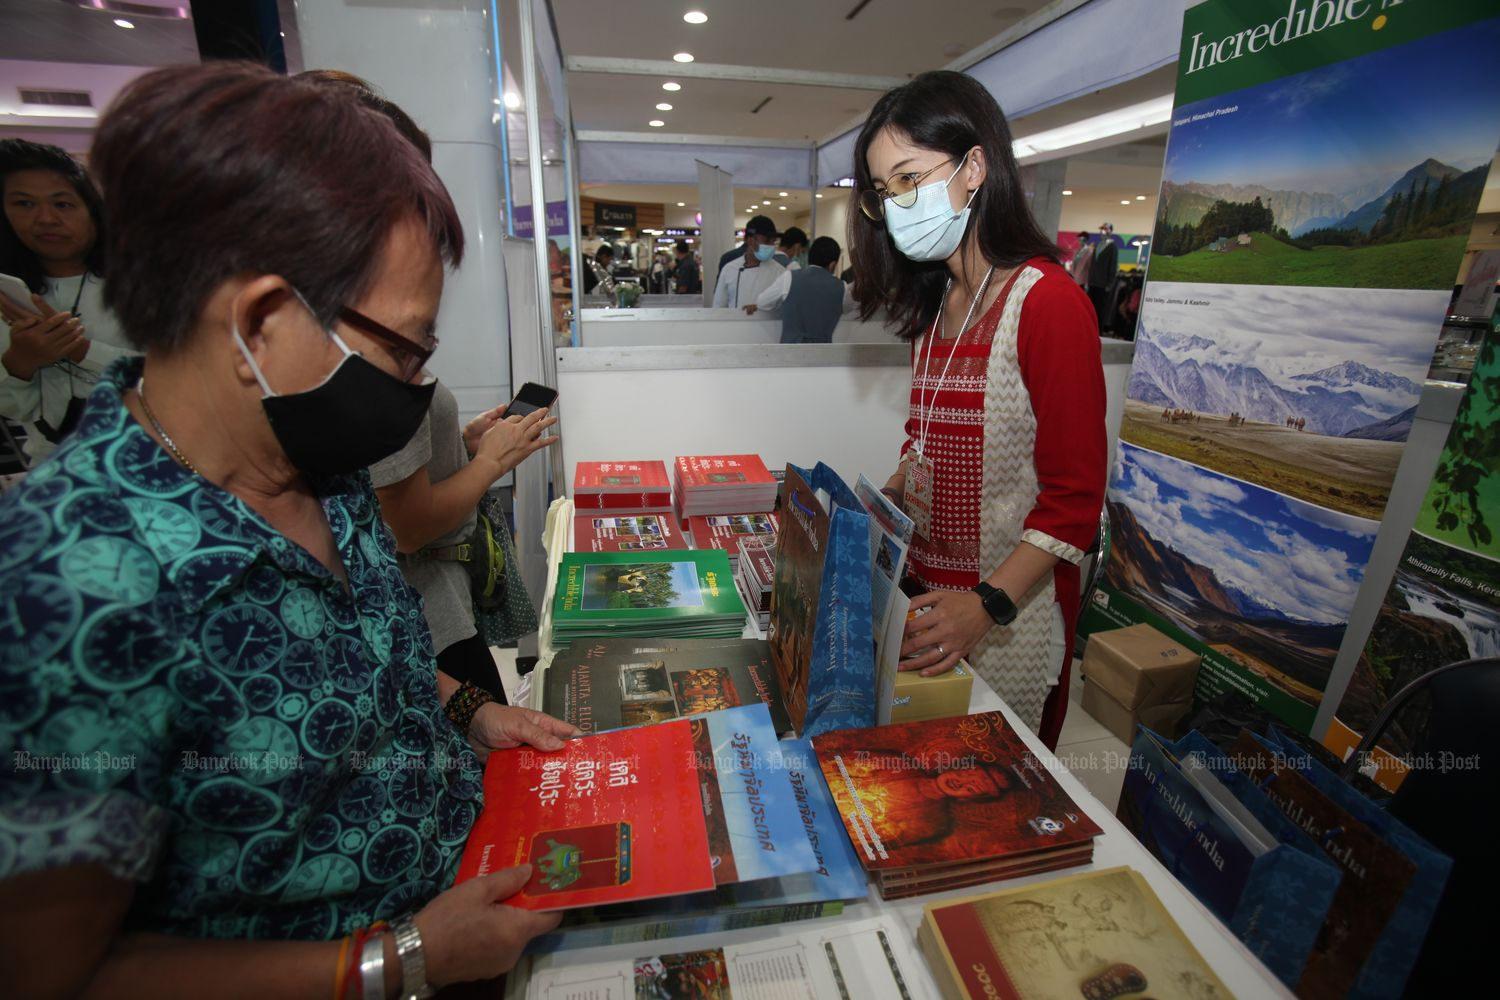 People wearing protective masks visit a booth at the Bay of Bengal cultural exhibition at MBK Center in Bangkok on Friday. (Photo by Nutthawat Wichieanbut)